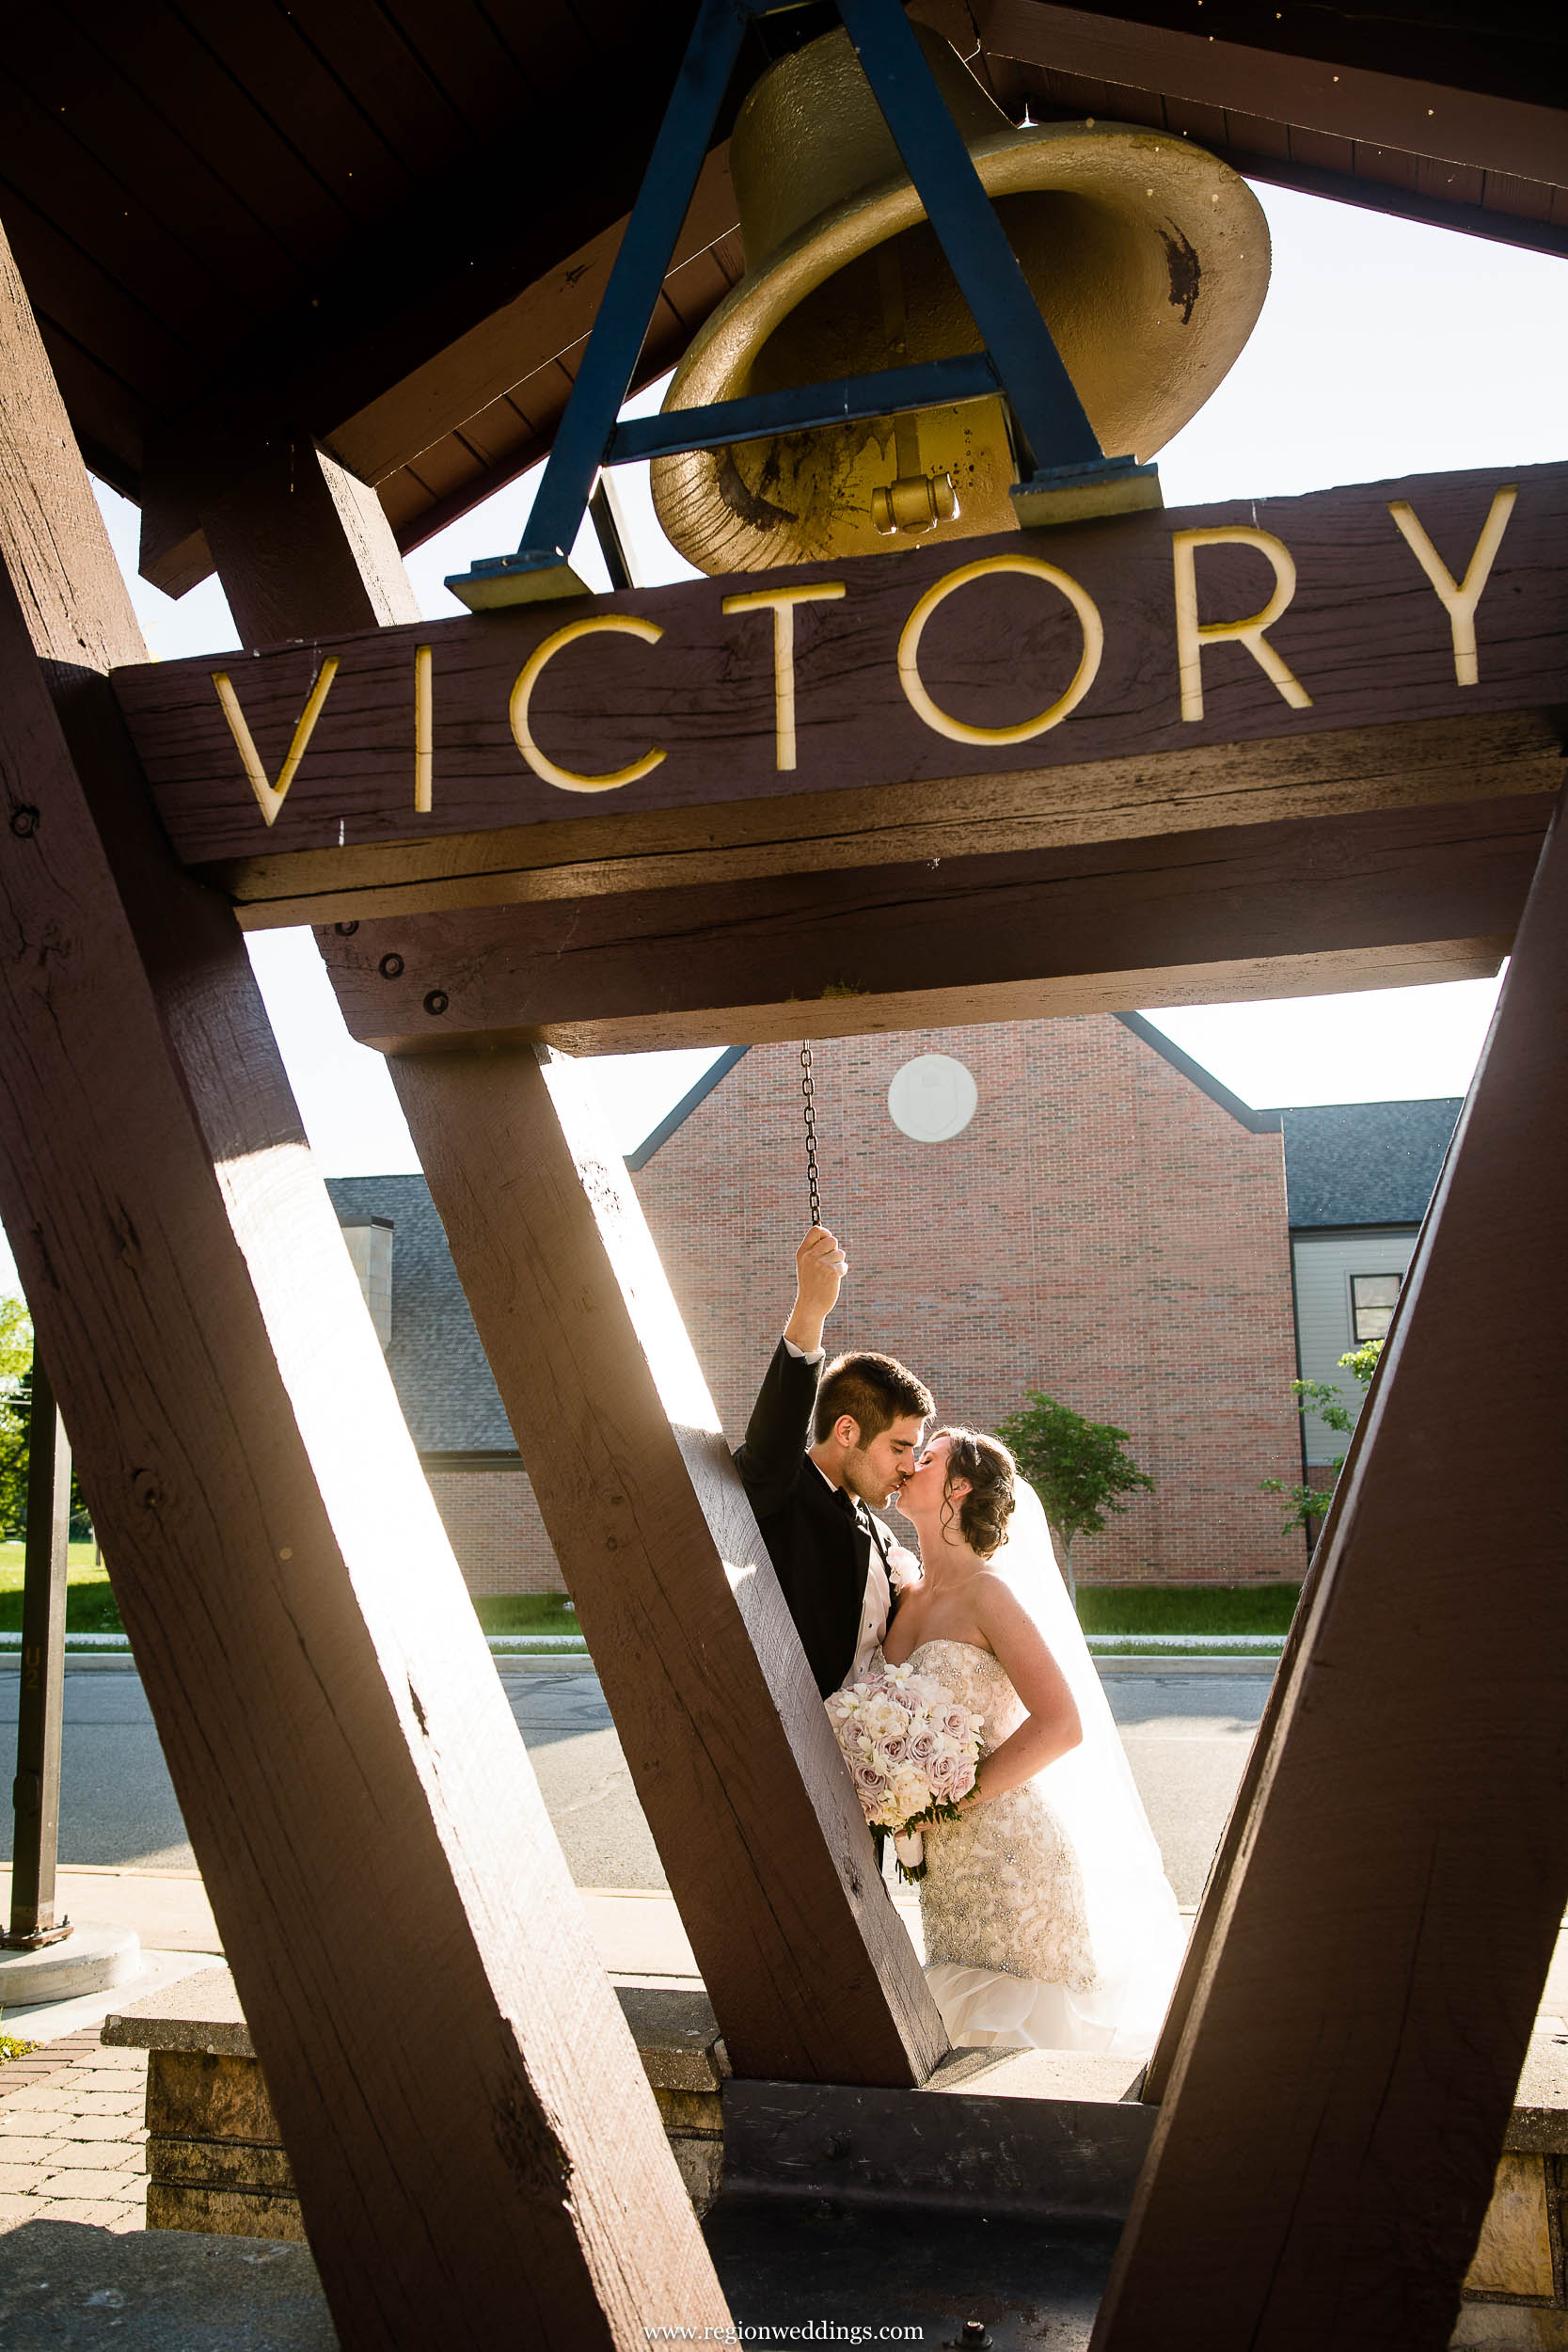 The groom rings the victory bell at Valparaiso University.